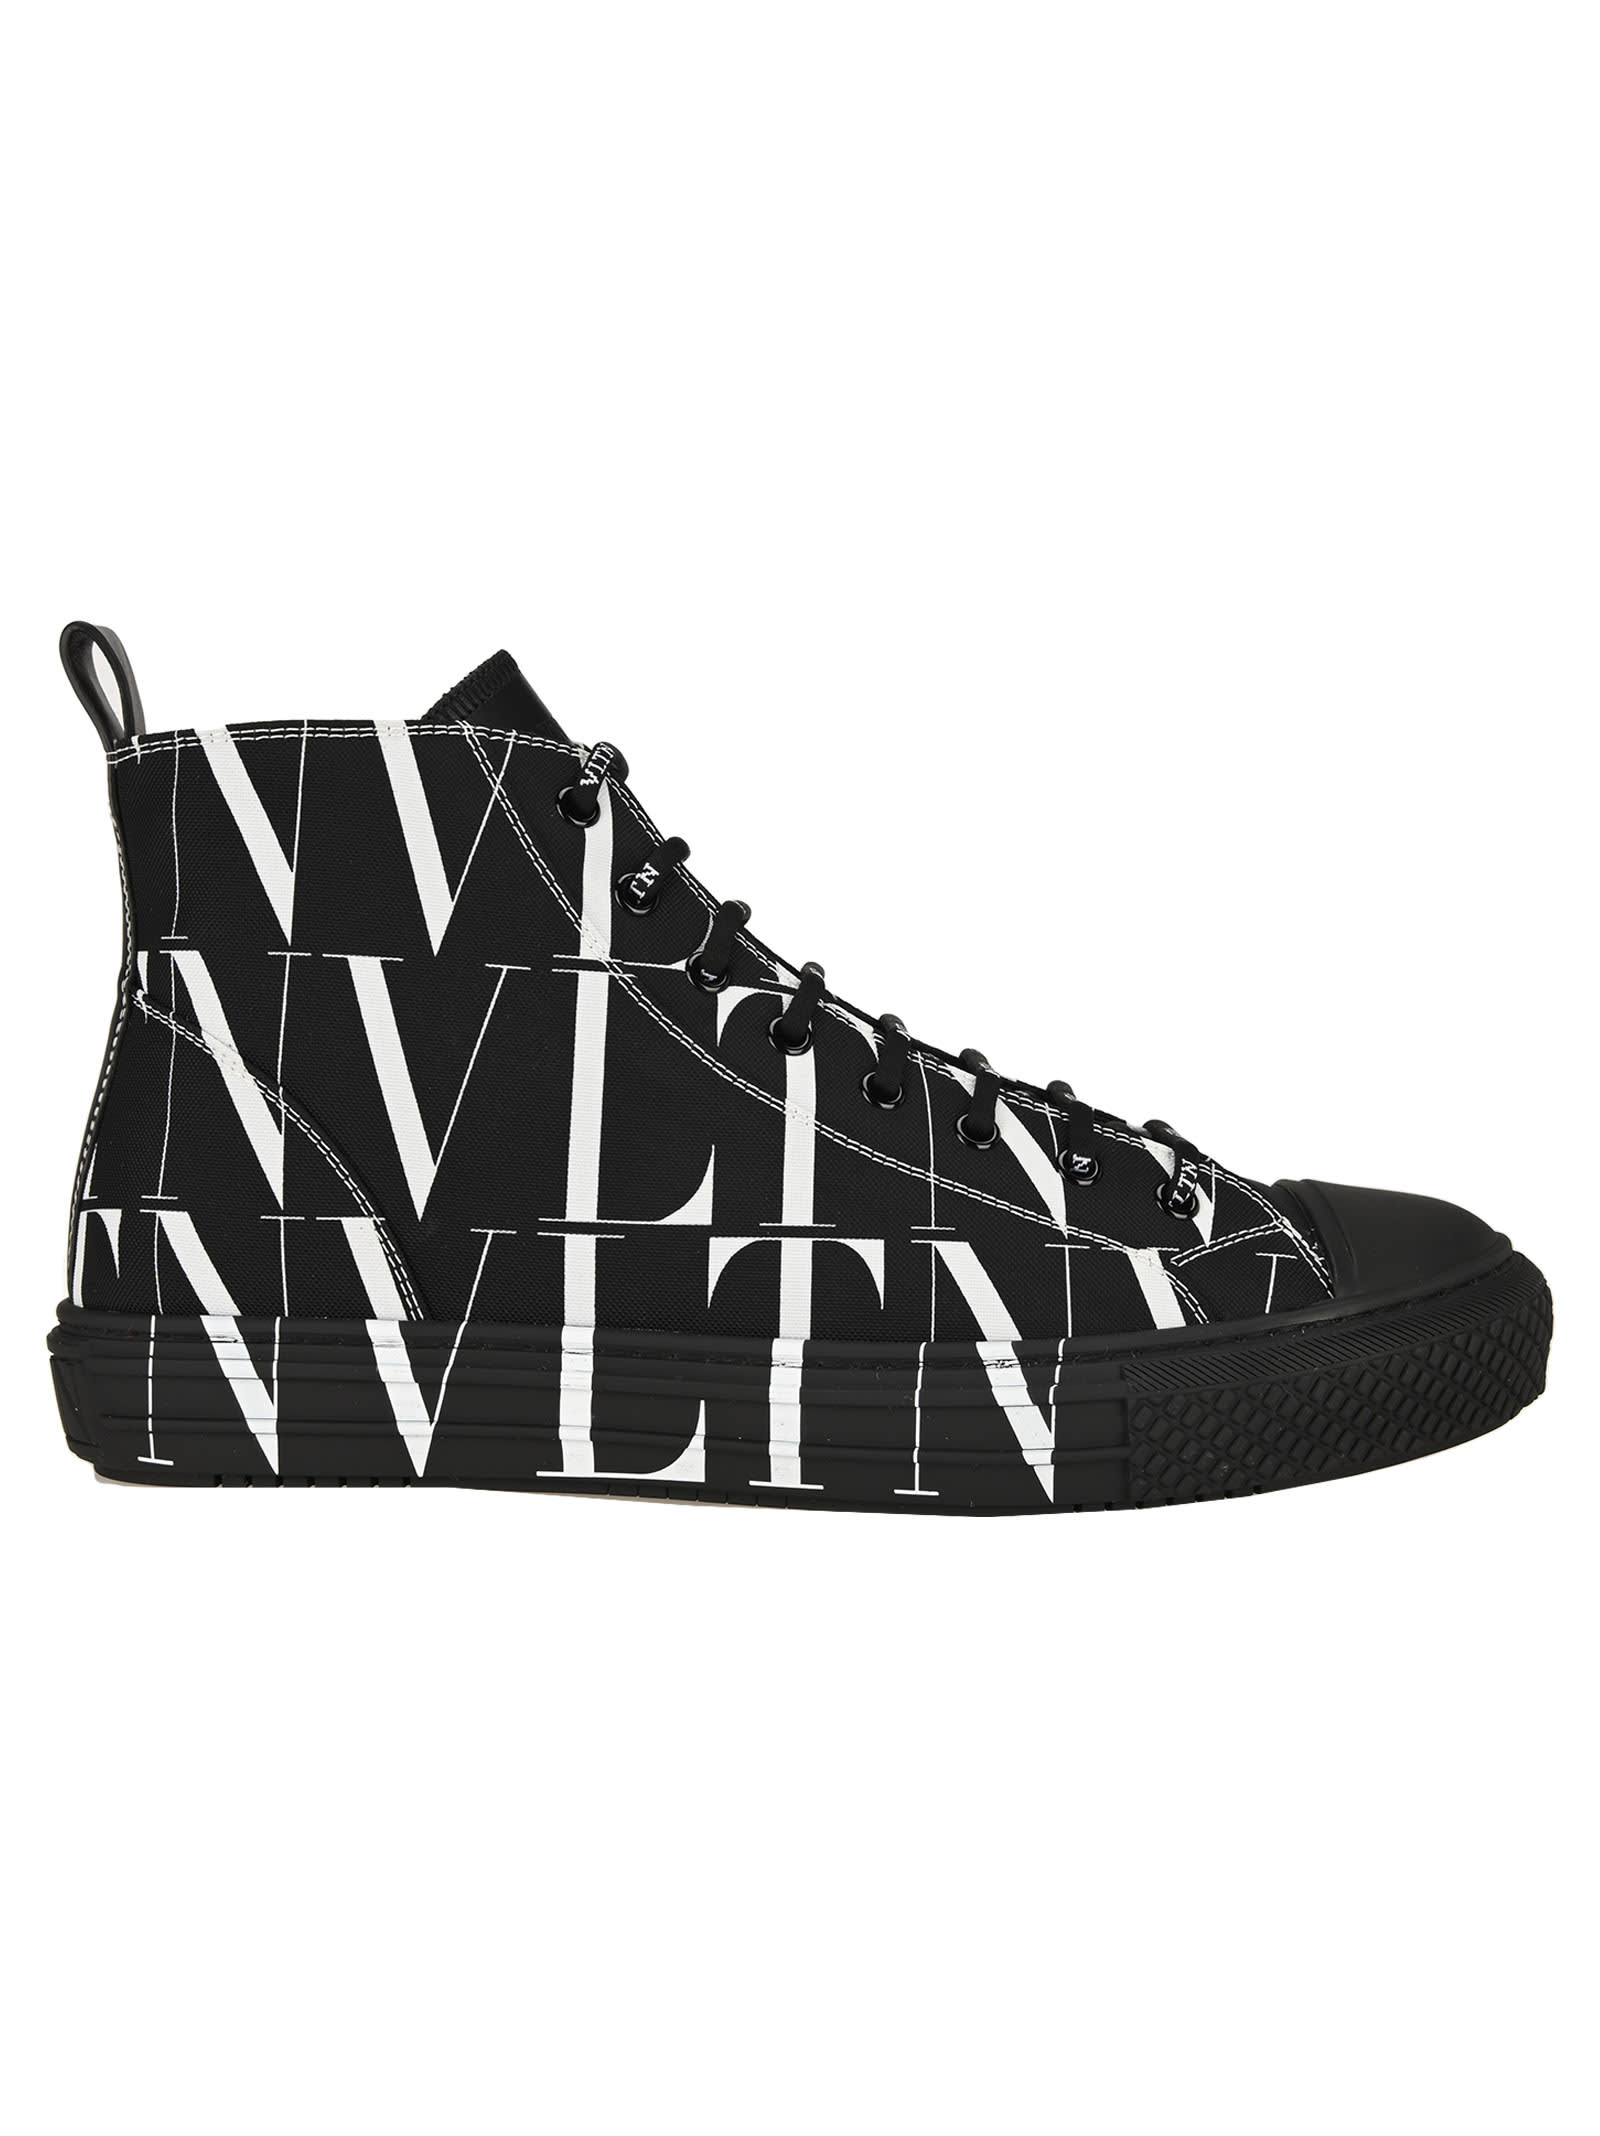 VALENTINO VLTN HIGH TOP SNEAKERS